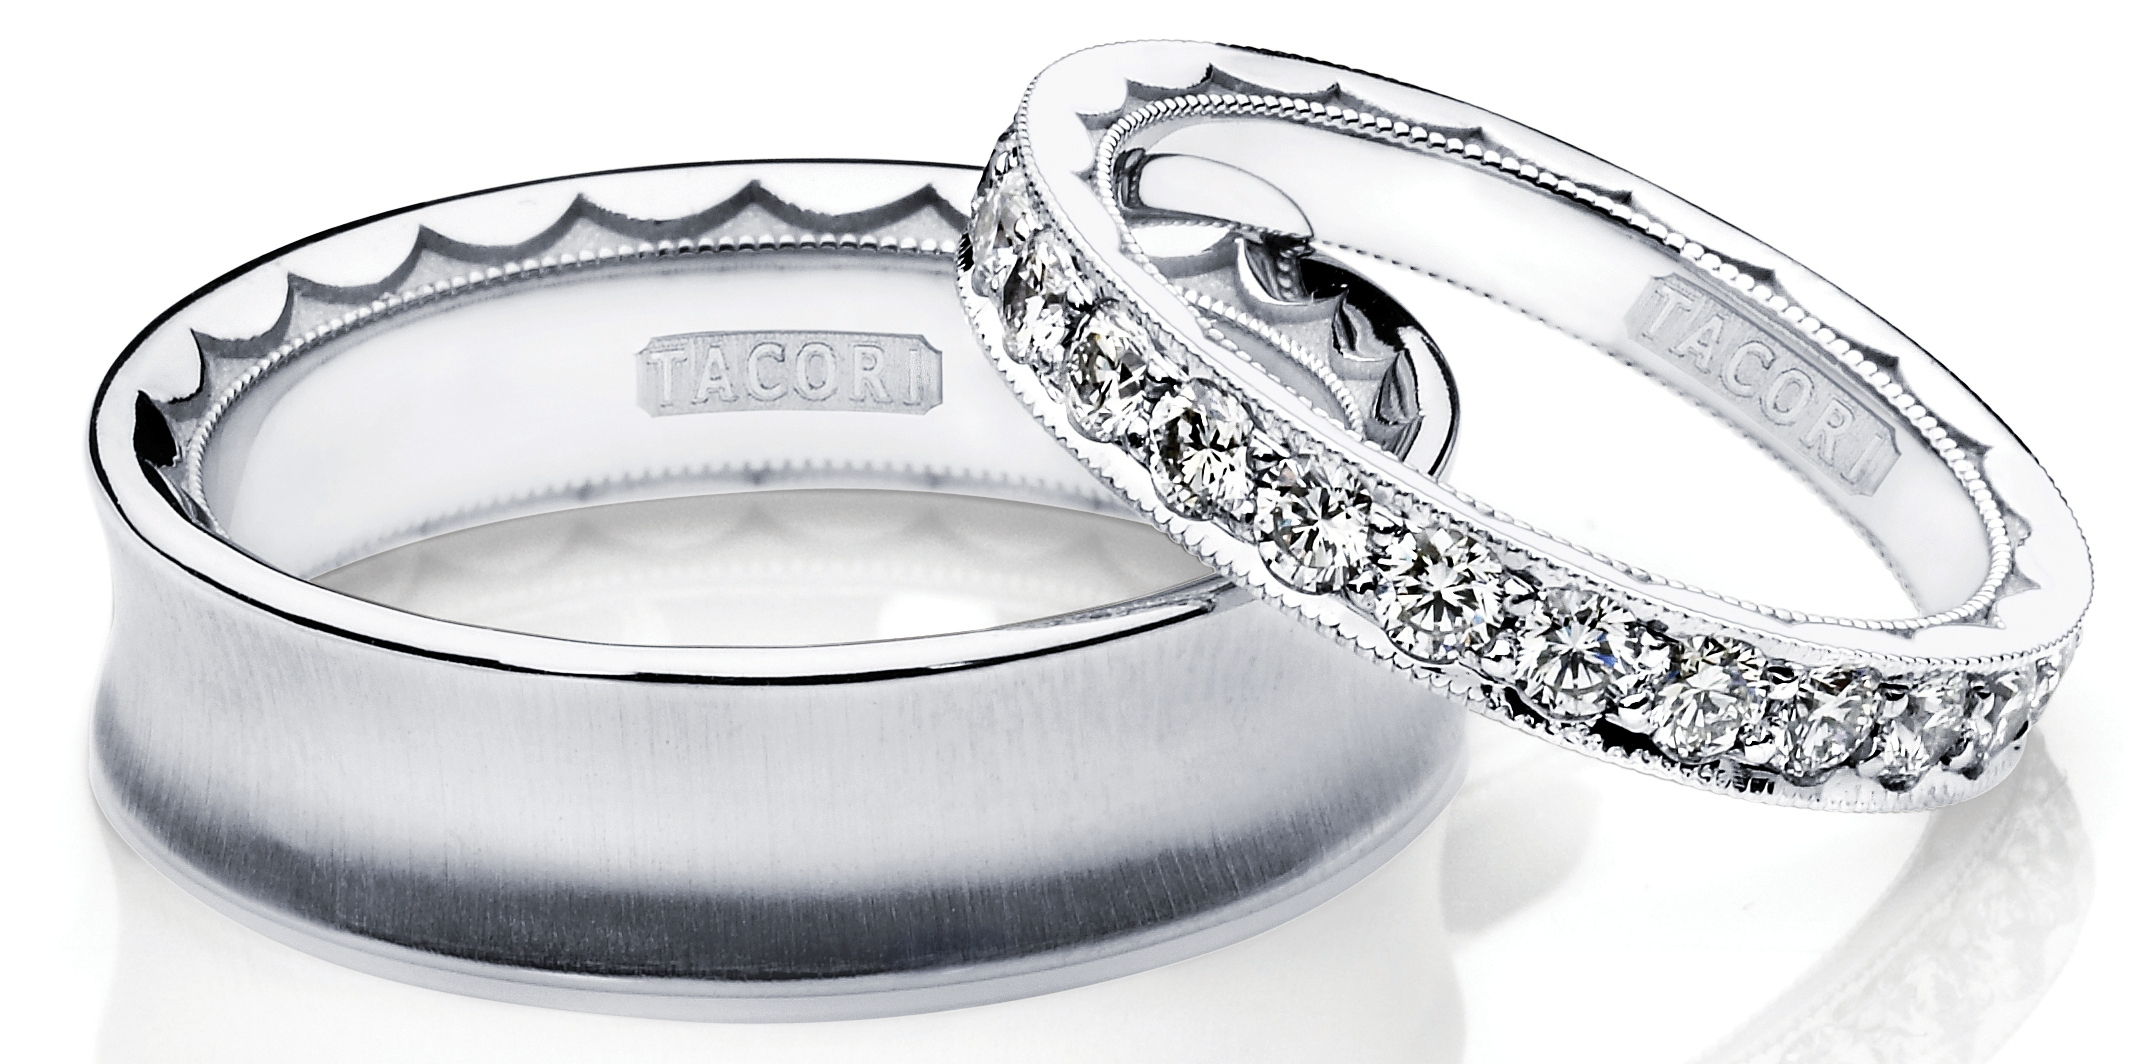 5 Alternatives To Wedding Bands For The Groom